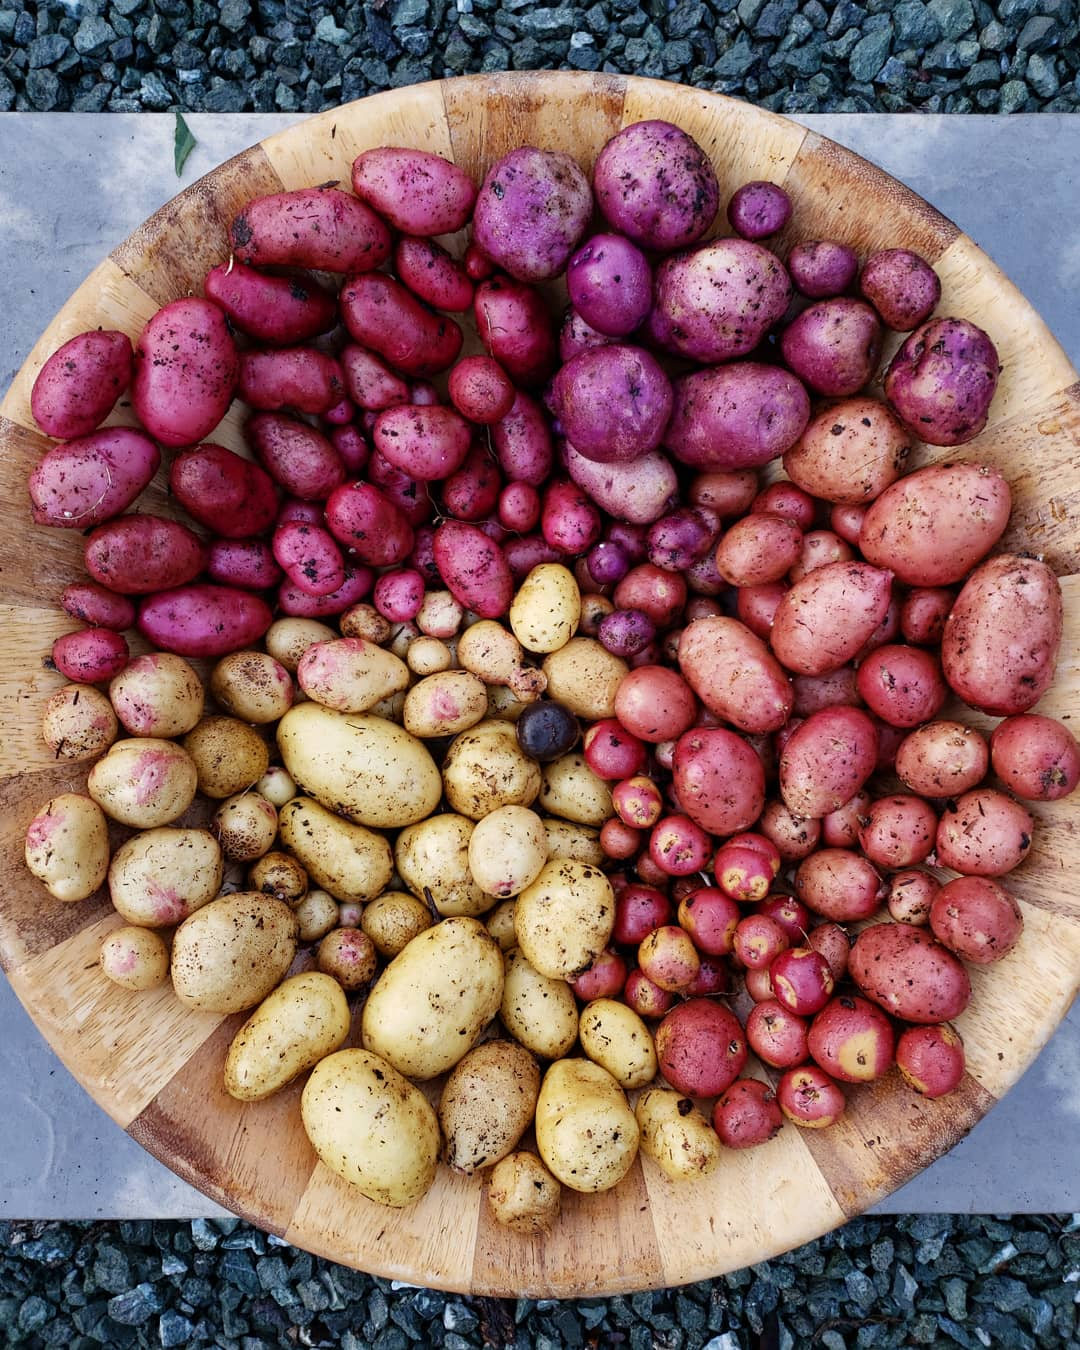 A large wooden bowl full of colorful potatoes. Some are purple, red, yellow with pink spots, and plain yellow. They are separated by color.